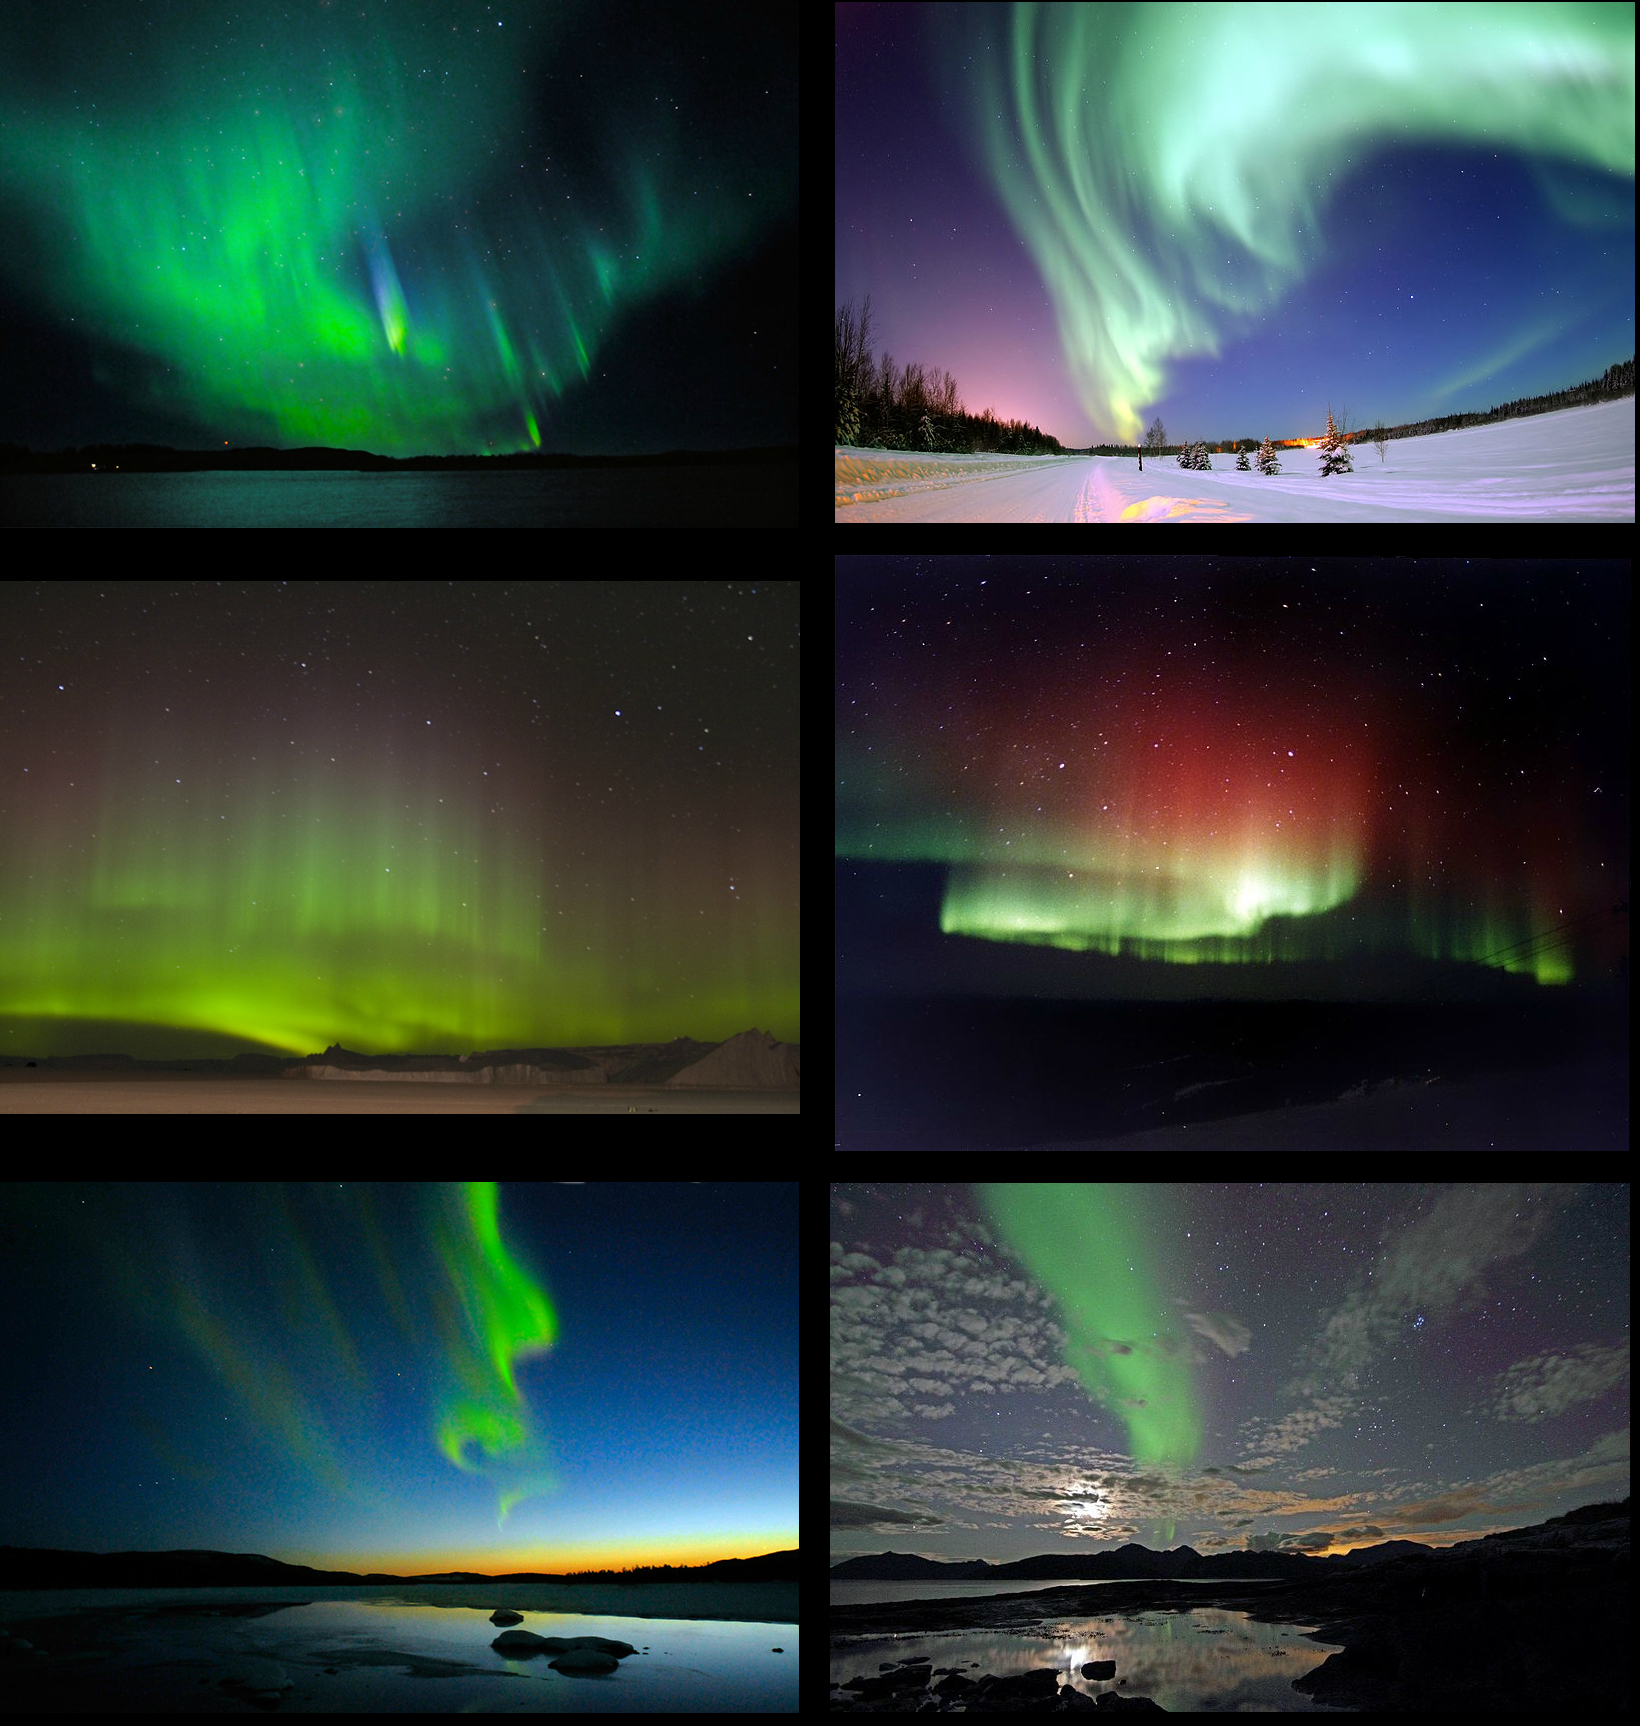 Fun Science for Kids on Natural Wonders of the World - Image of the Aurora Borealis